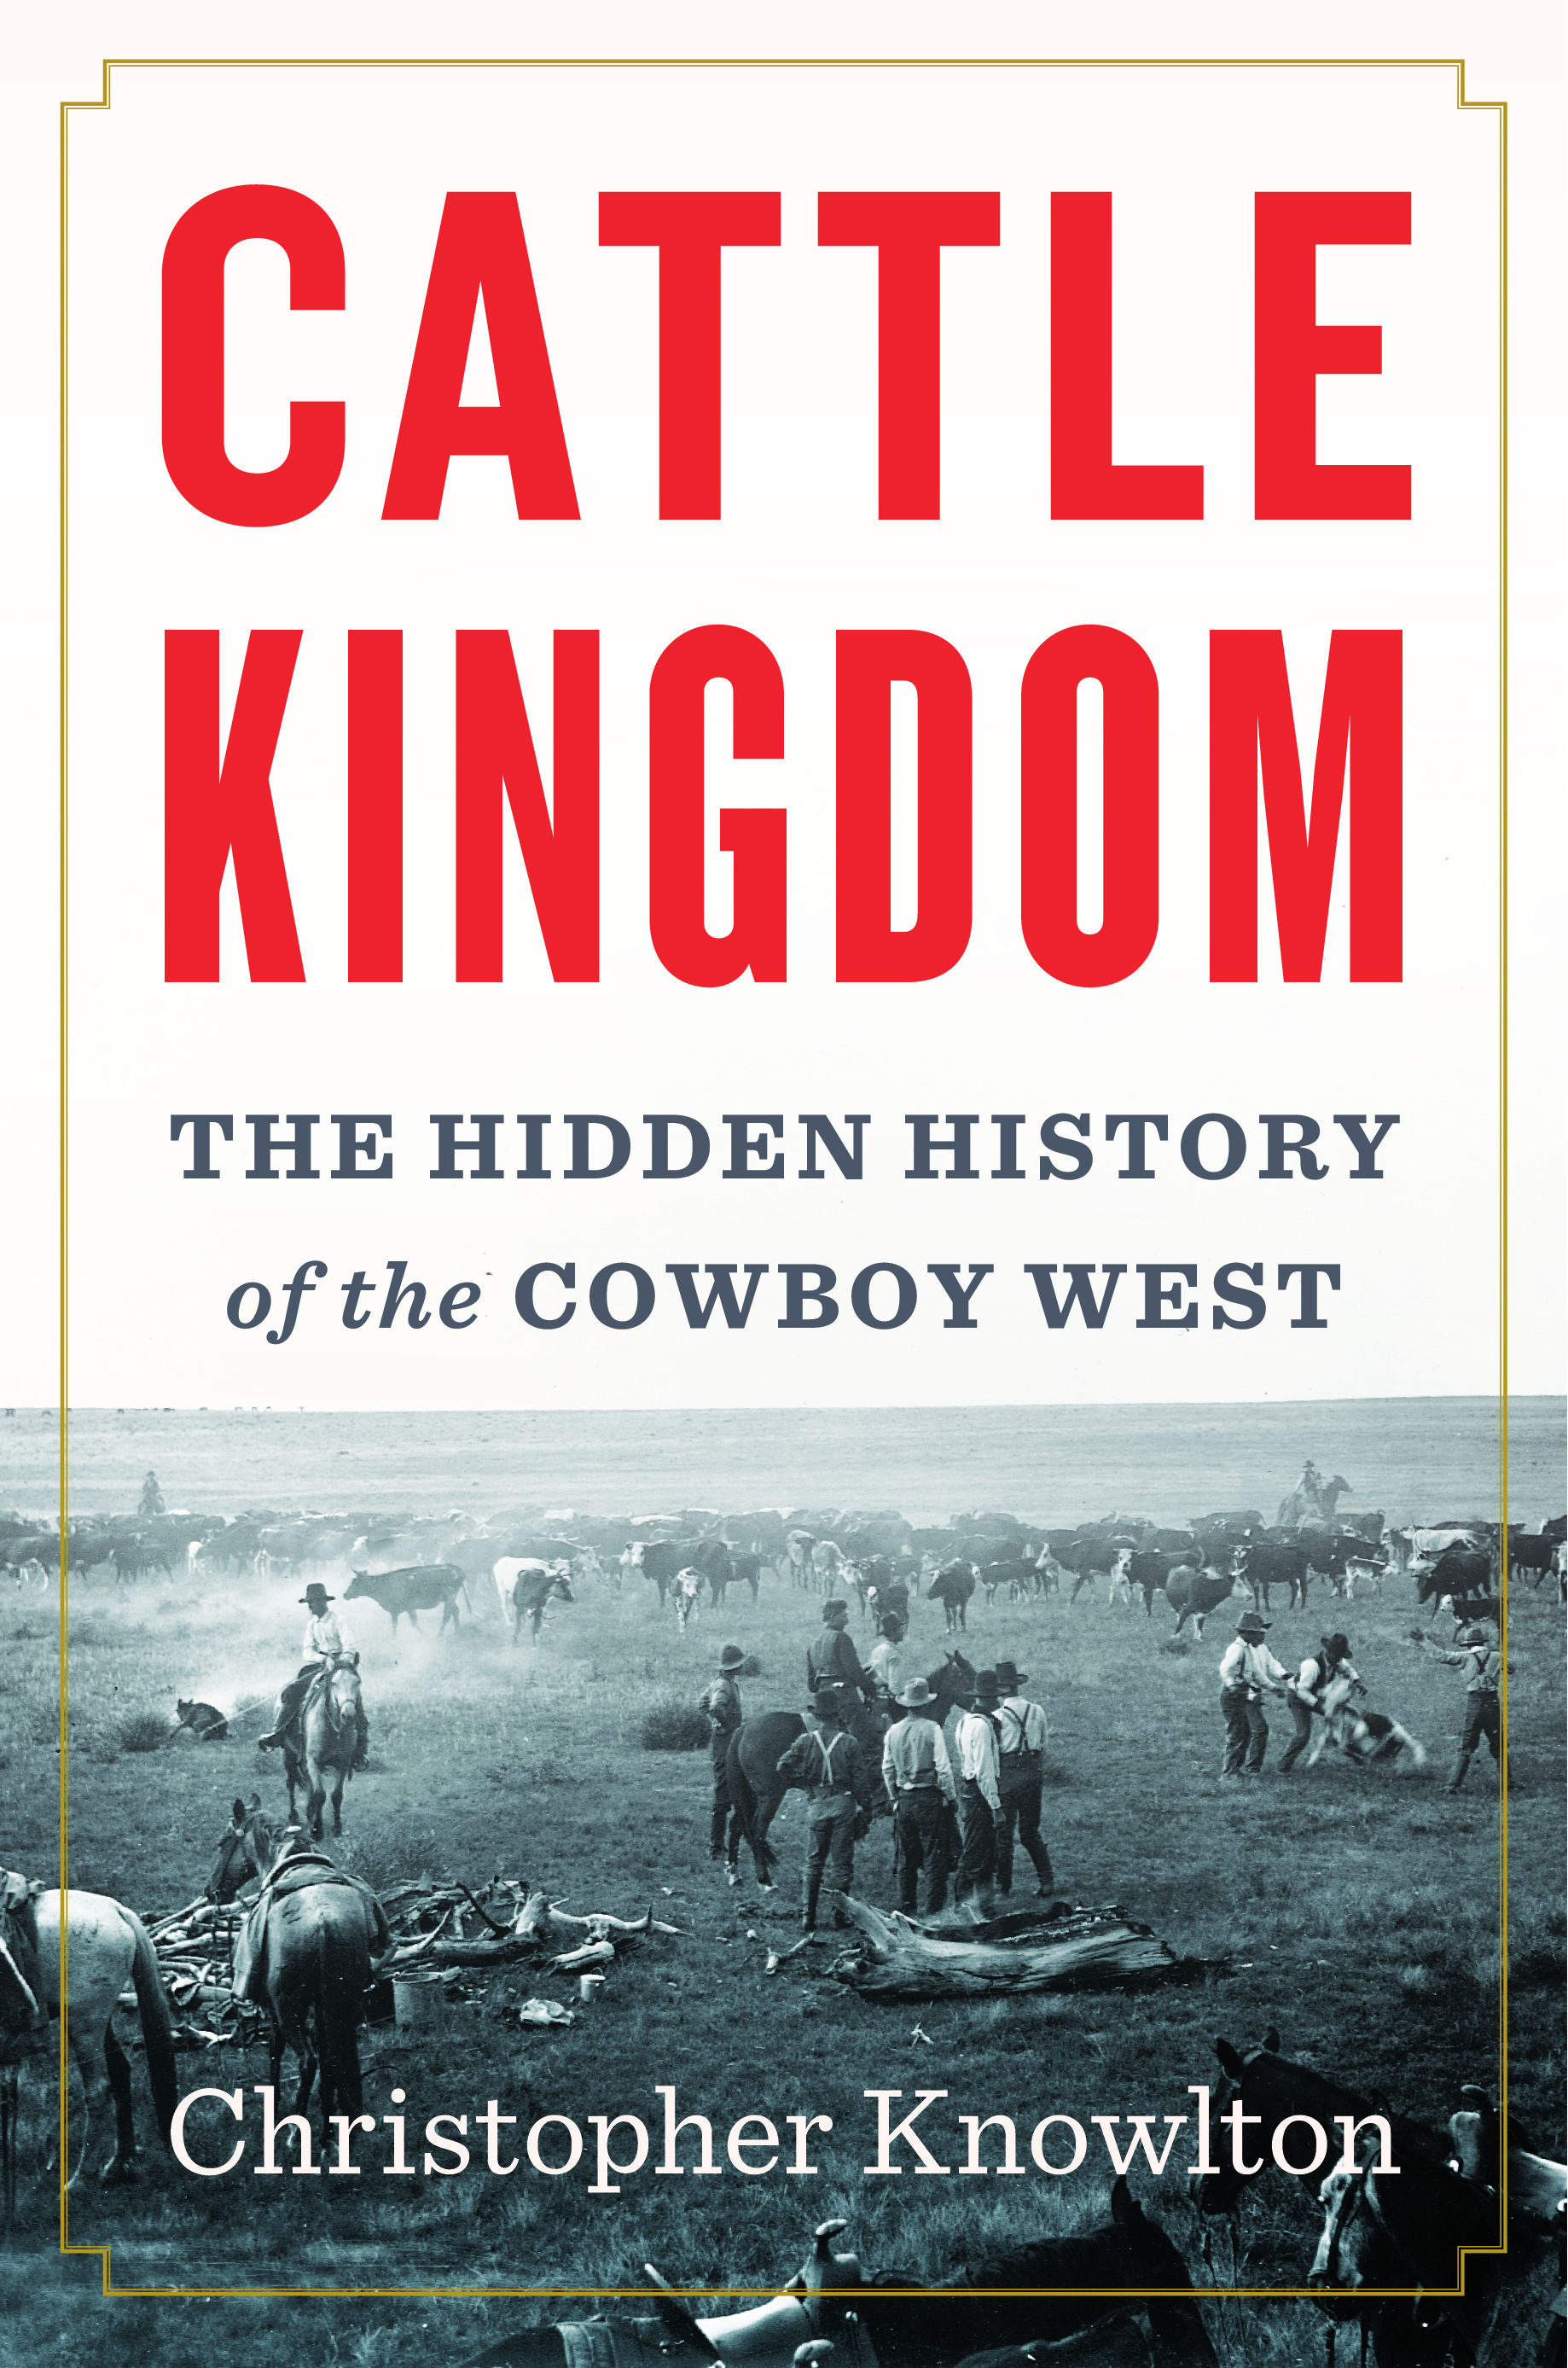 Book_Knowlton-Christopher_Cattle-Kingdom_1.jpg